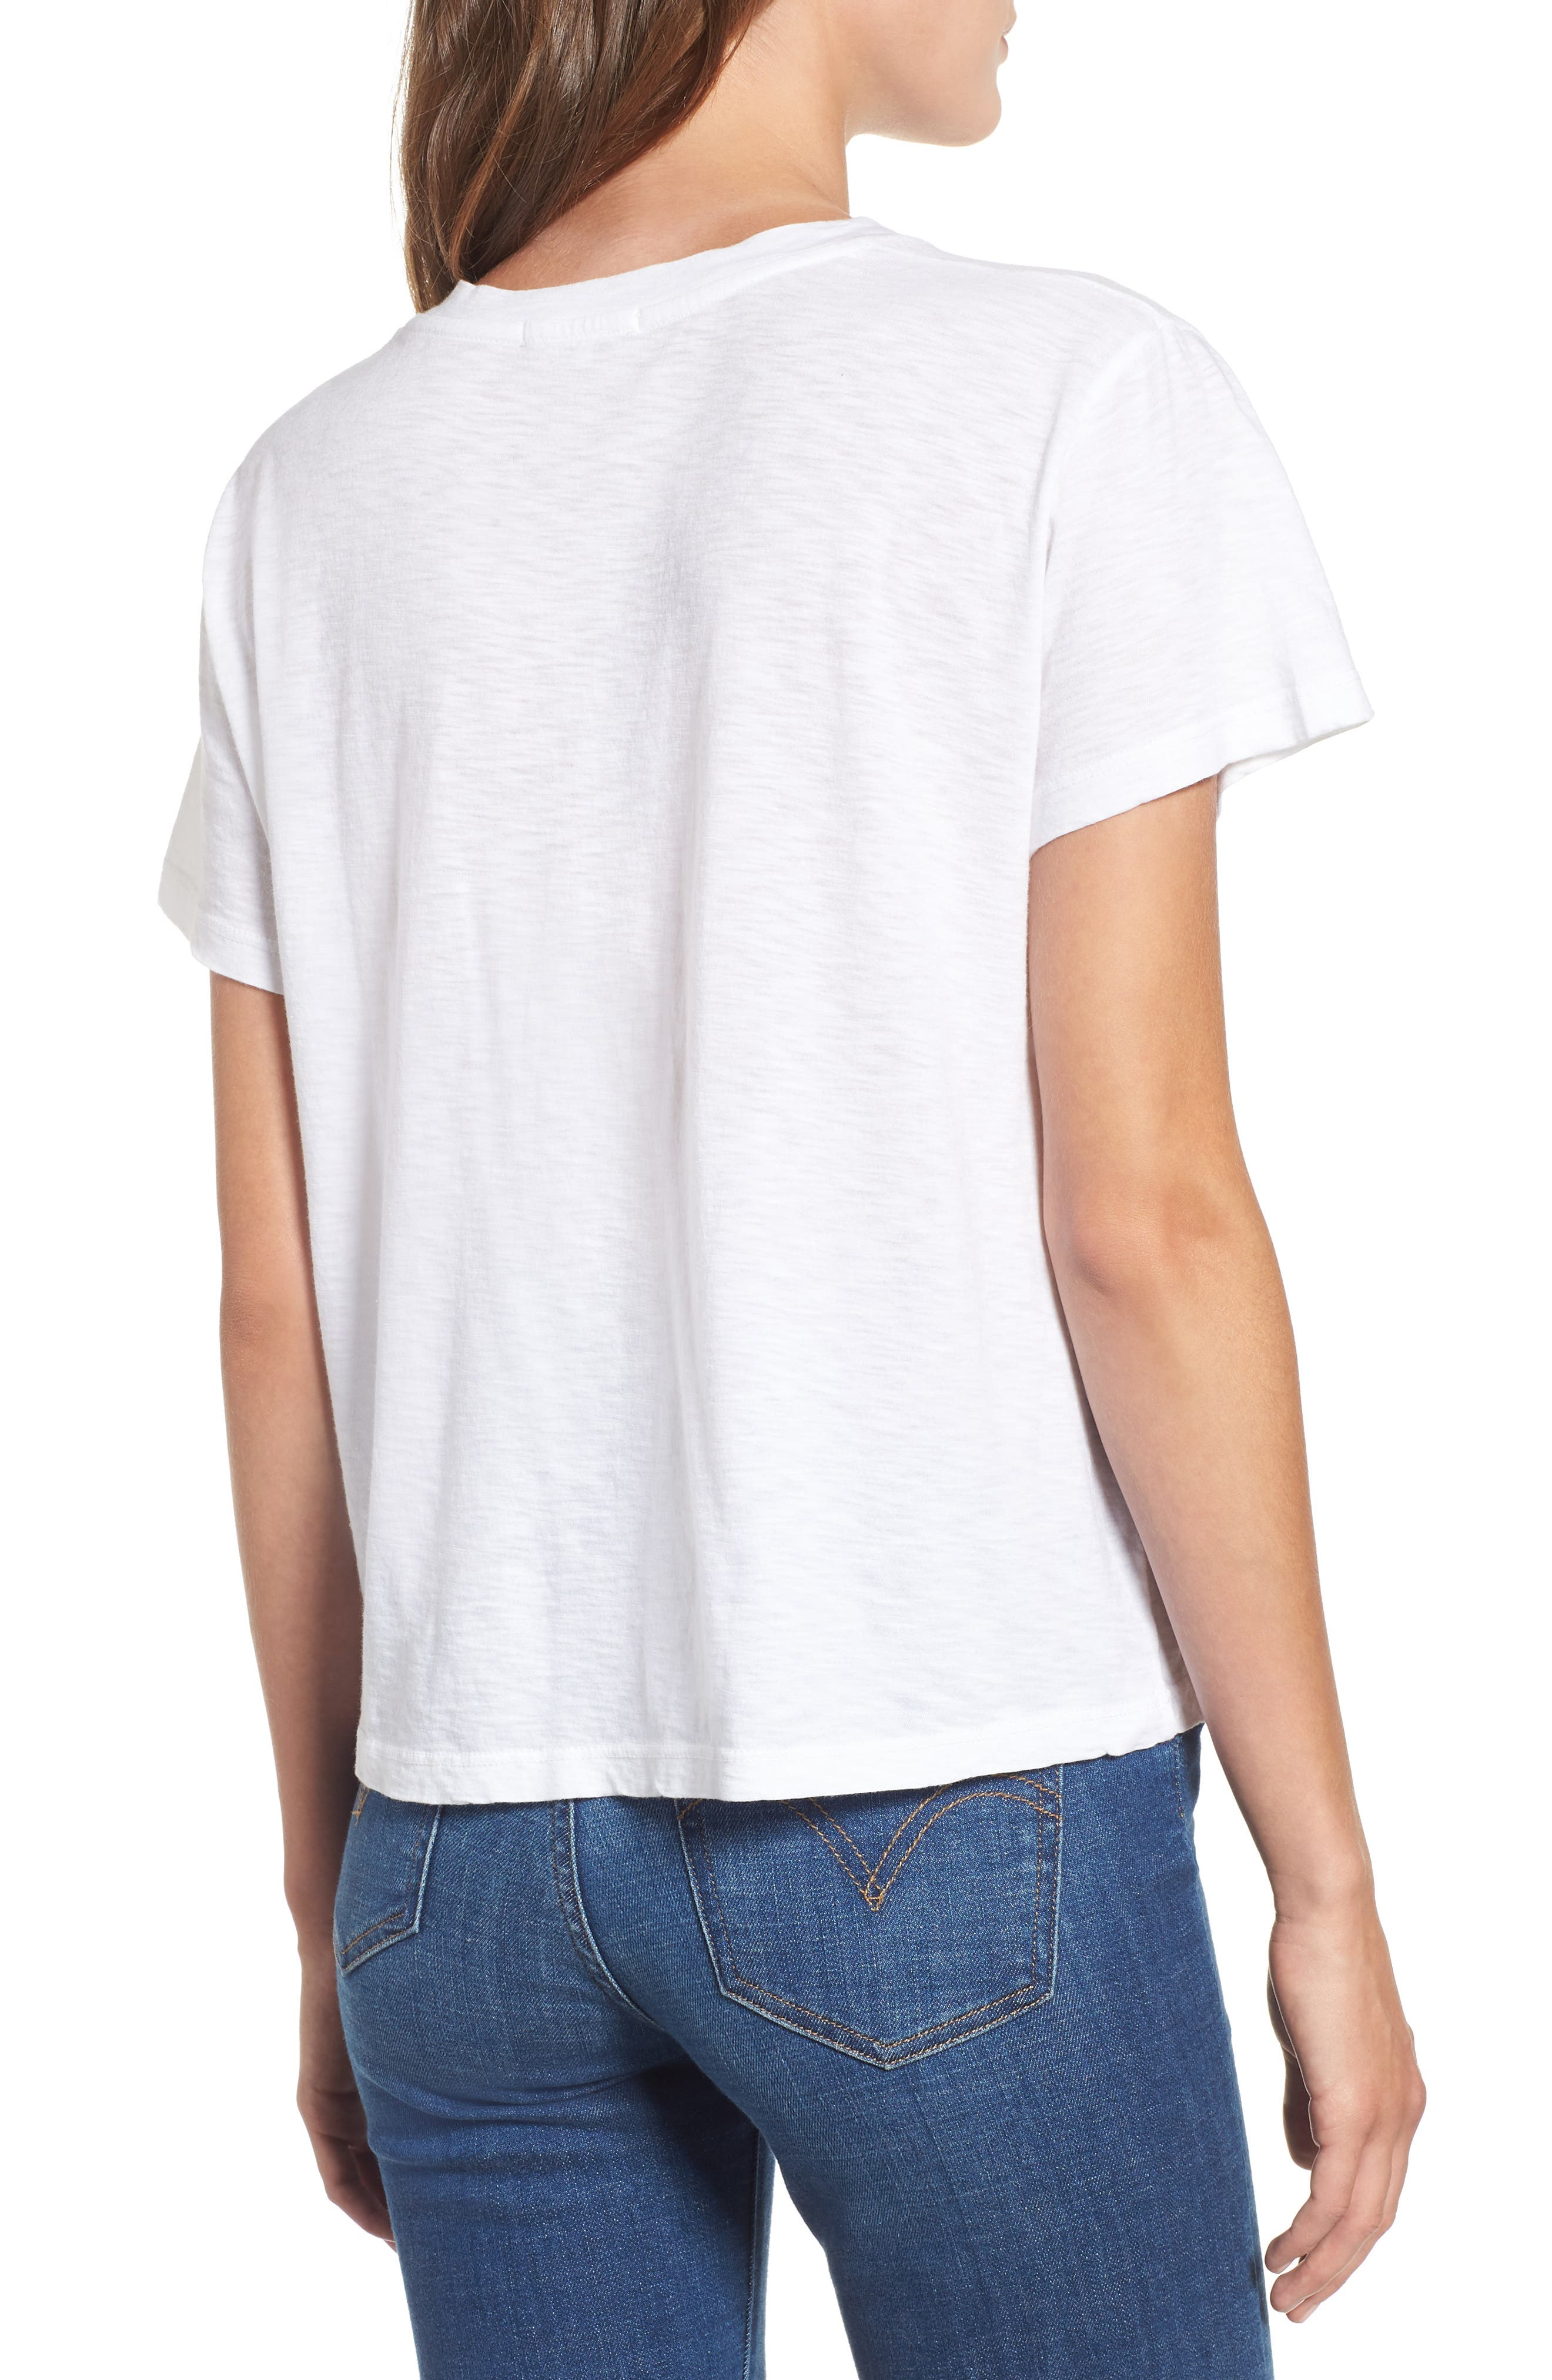 SUNDRY,                             Smile Boxy Cotton Tee,                             Alternate thumbnail 2, color,                             100